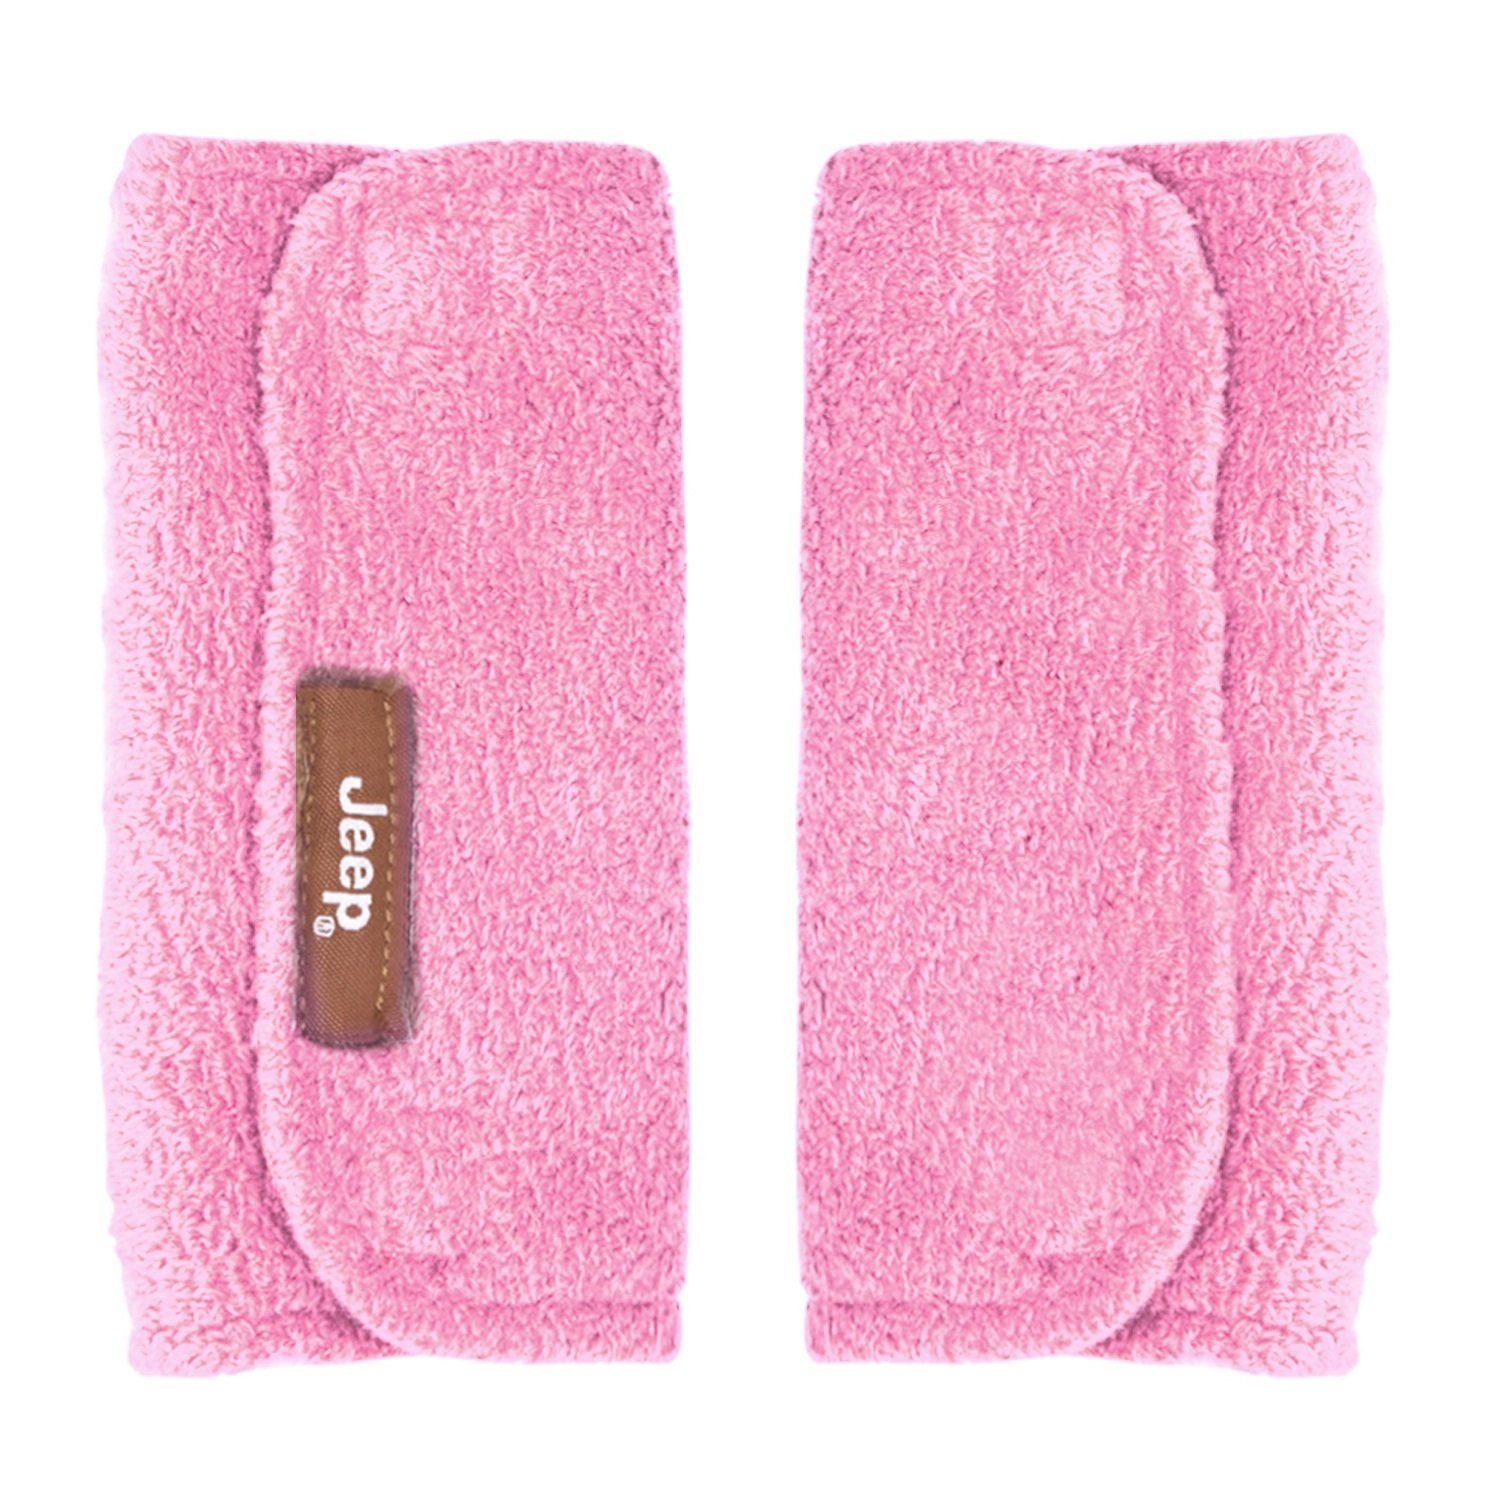 Jeep Car Seat Strap Covers 2 Pack, Plush Pink - Styles May Vary HIS Juveniles 90149P